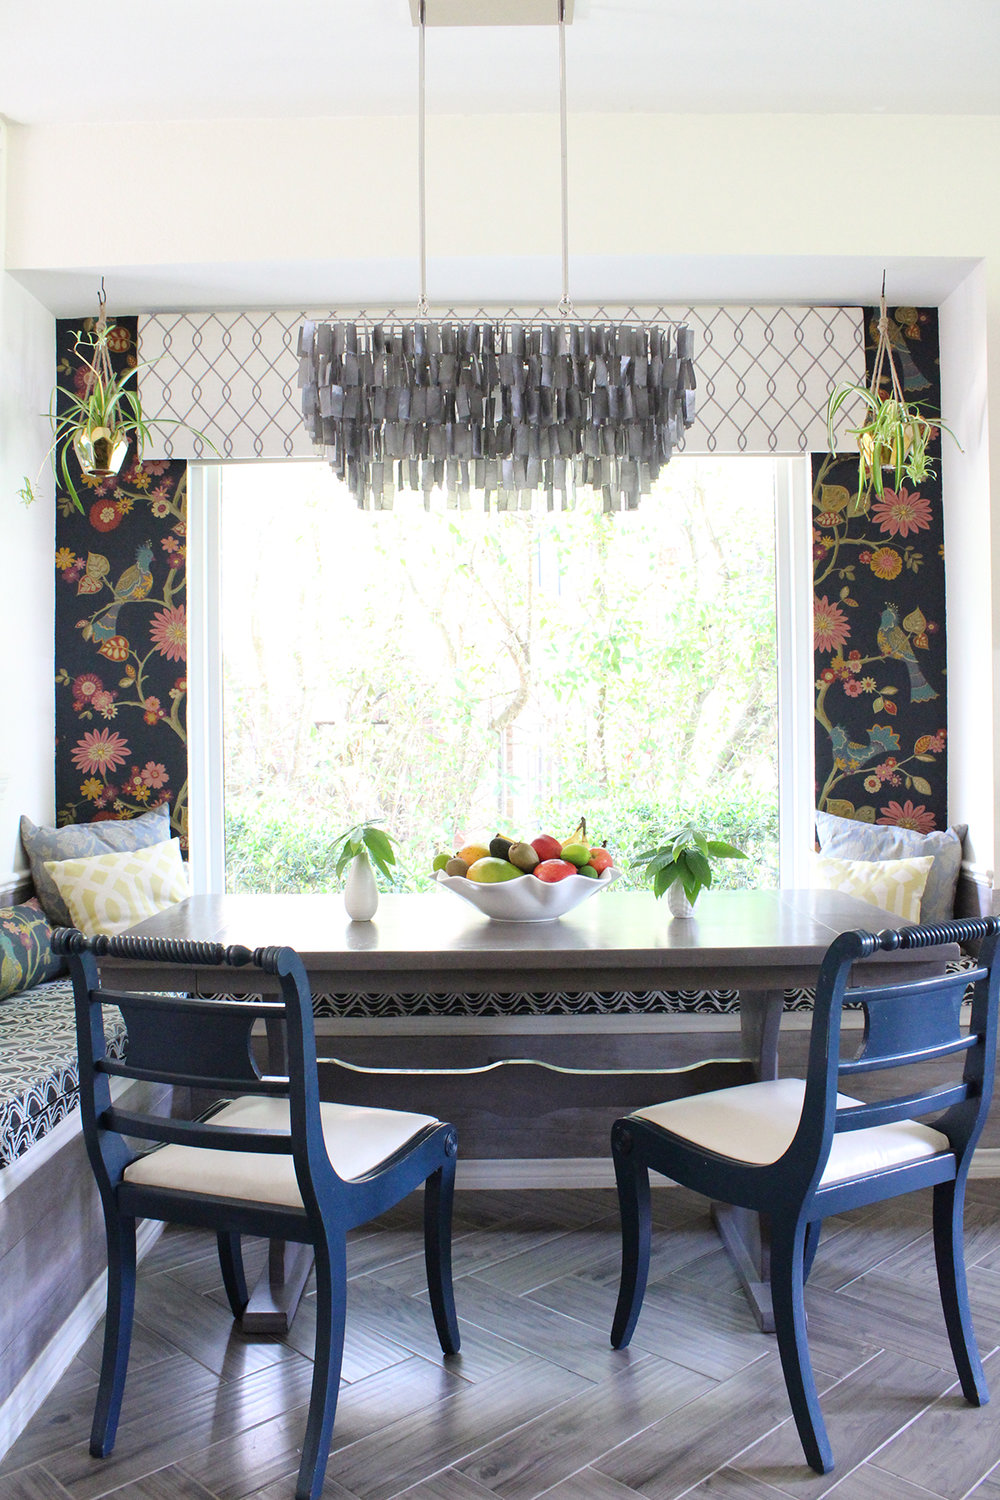 Breakfast nook featuring fabric wallpaper, capiz chandelier and herringbone tile floors by Kristin Laing Designs